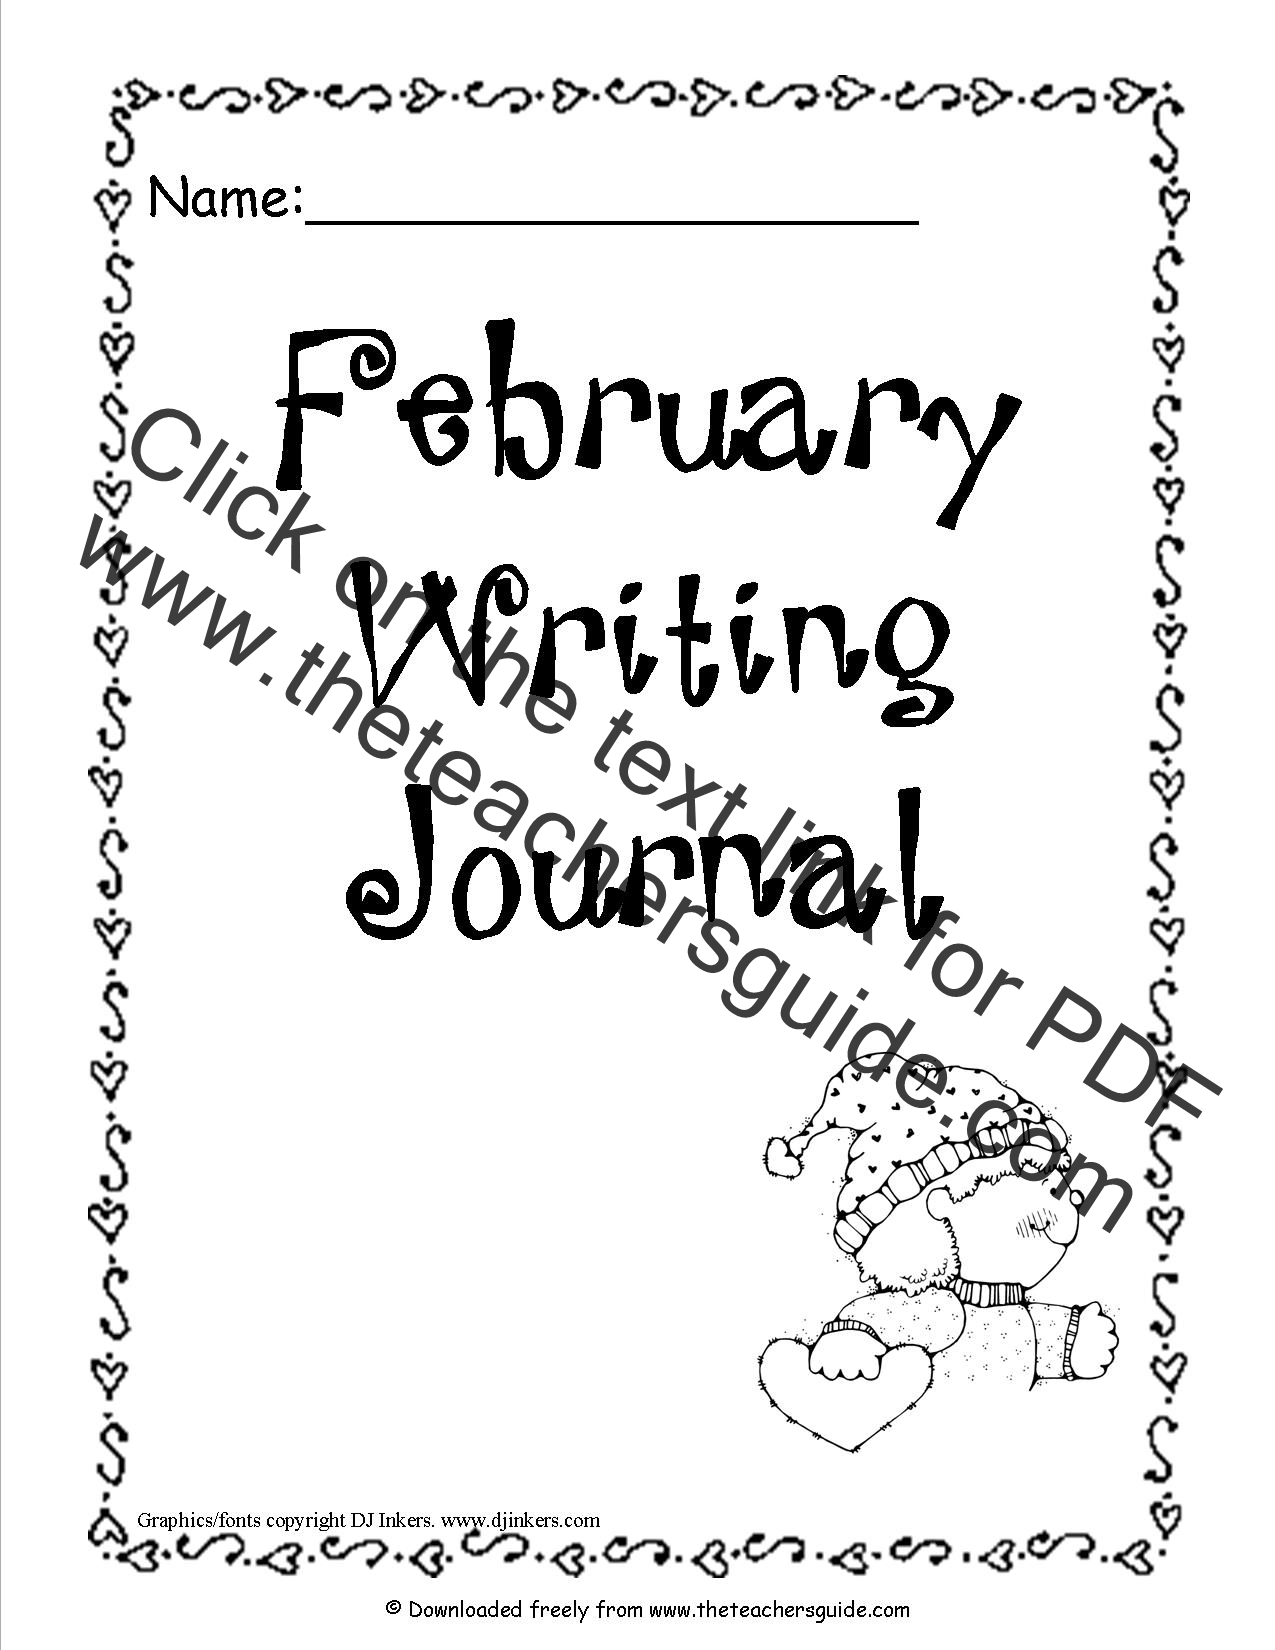 February Lesson Plans, Printouts, Themes, Crafts and Holidays